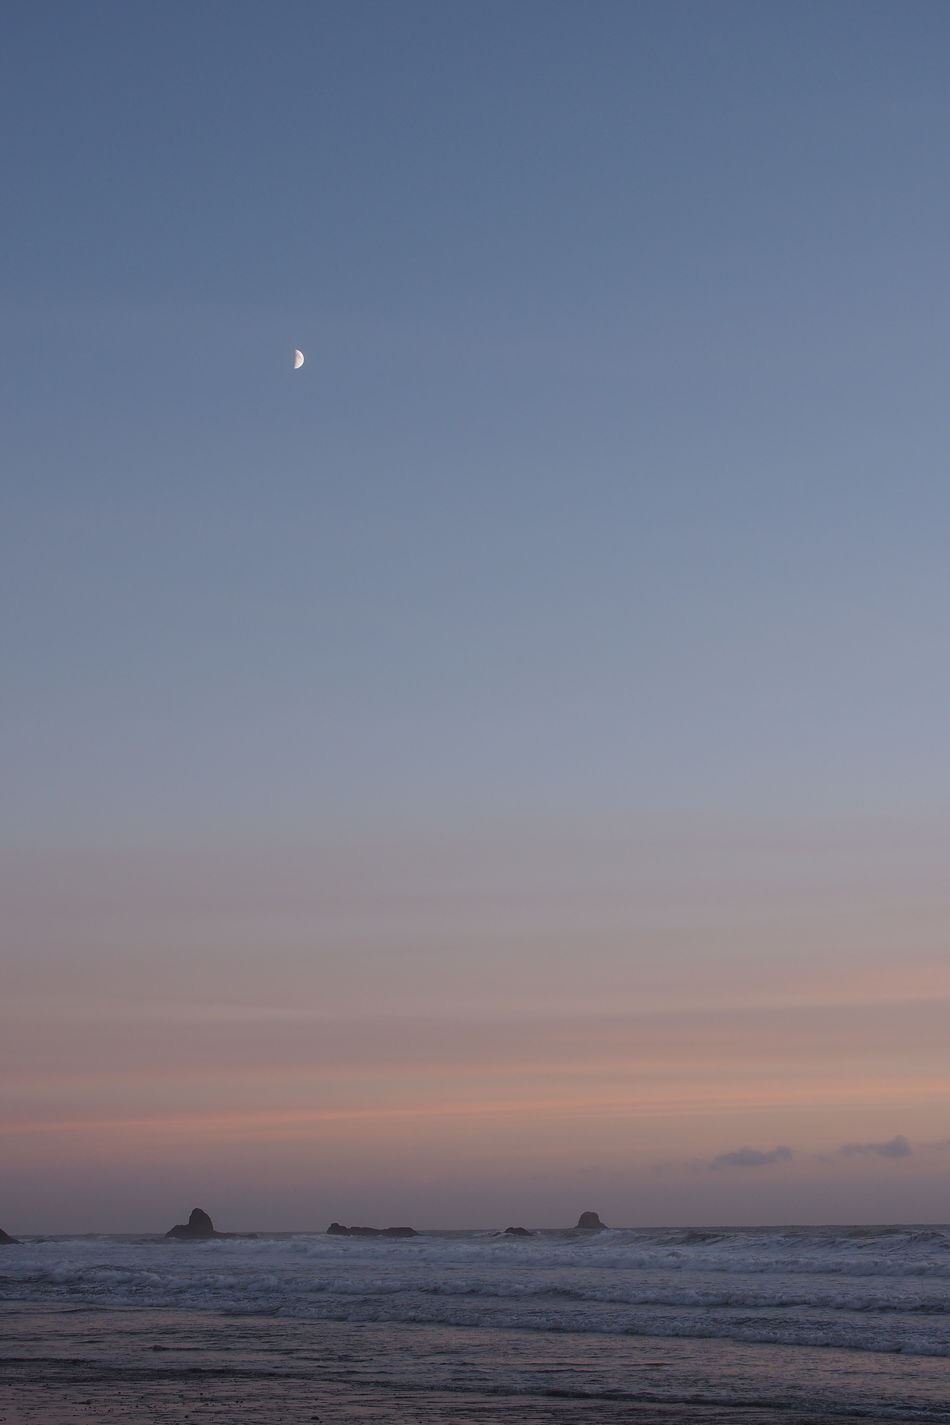 Astronomy Beach Beauty In Nature Crescent Day Half Moon Horizon Over Water Moon Nature No People Outdoors Scenics Sea Silhouette Sky Sunset Tranquil Scene Tranquility Water